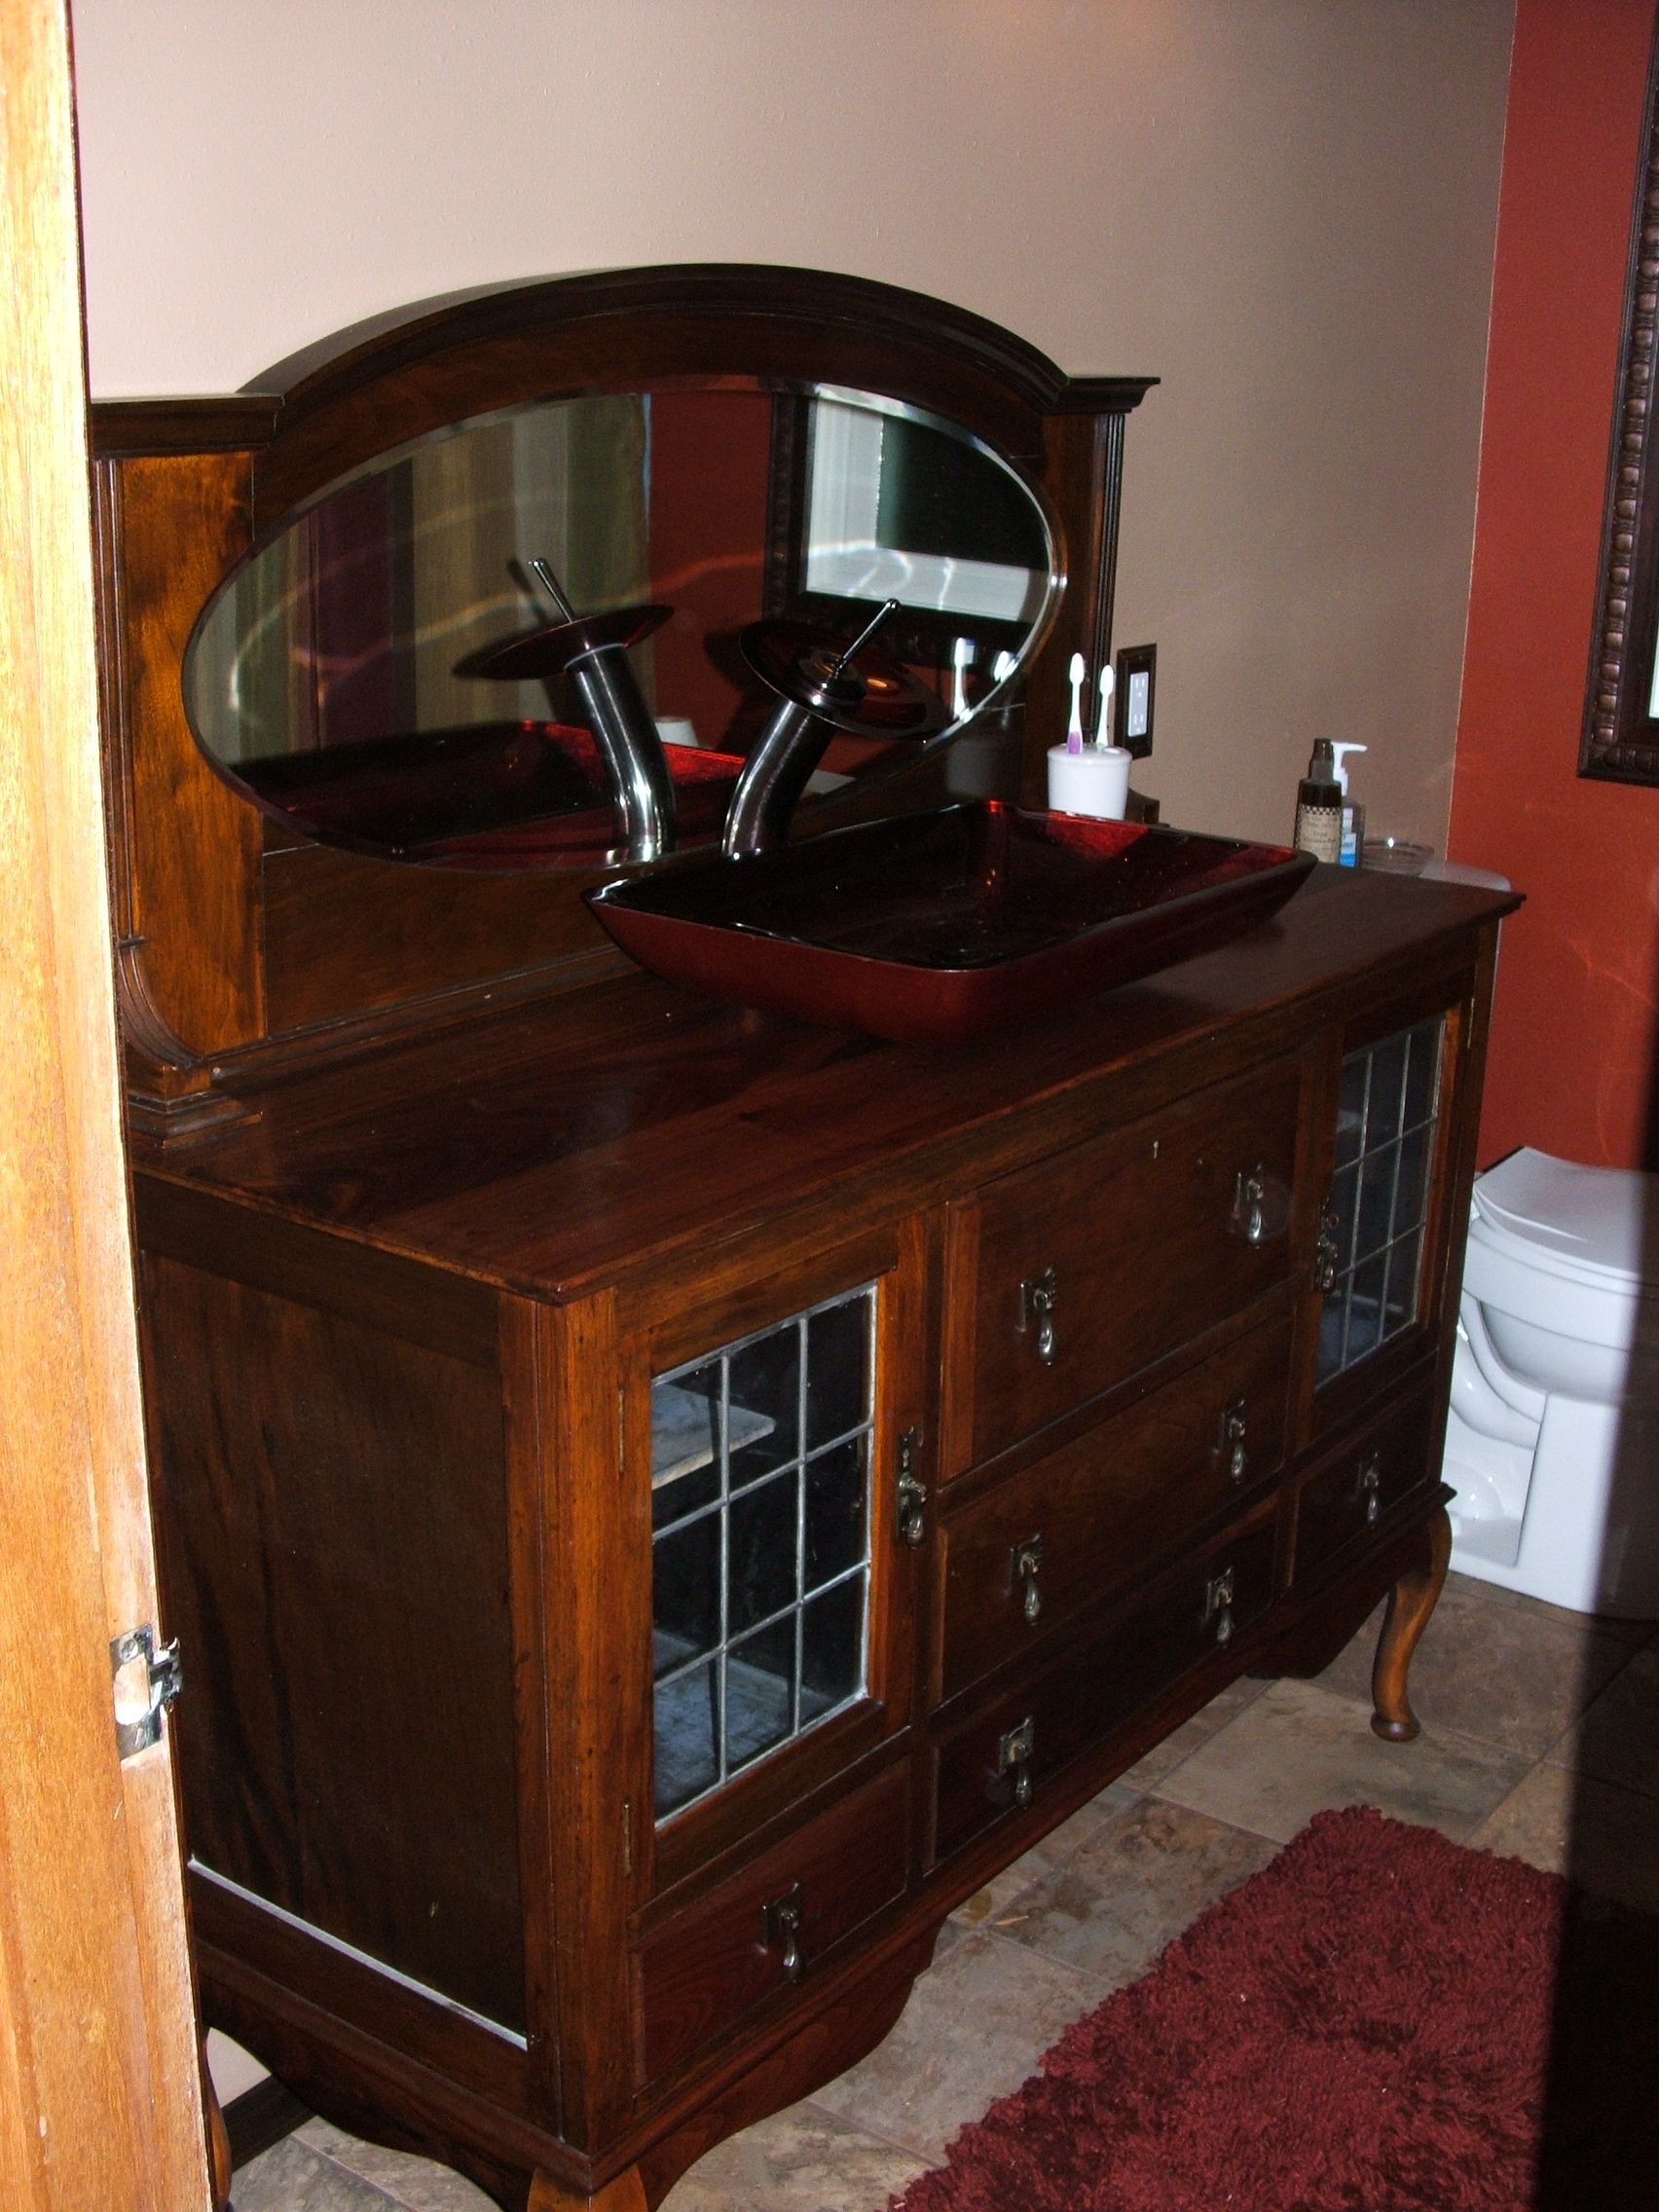 Antique buffet my husband refinished and made into a vanity.